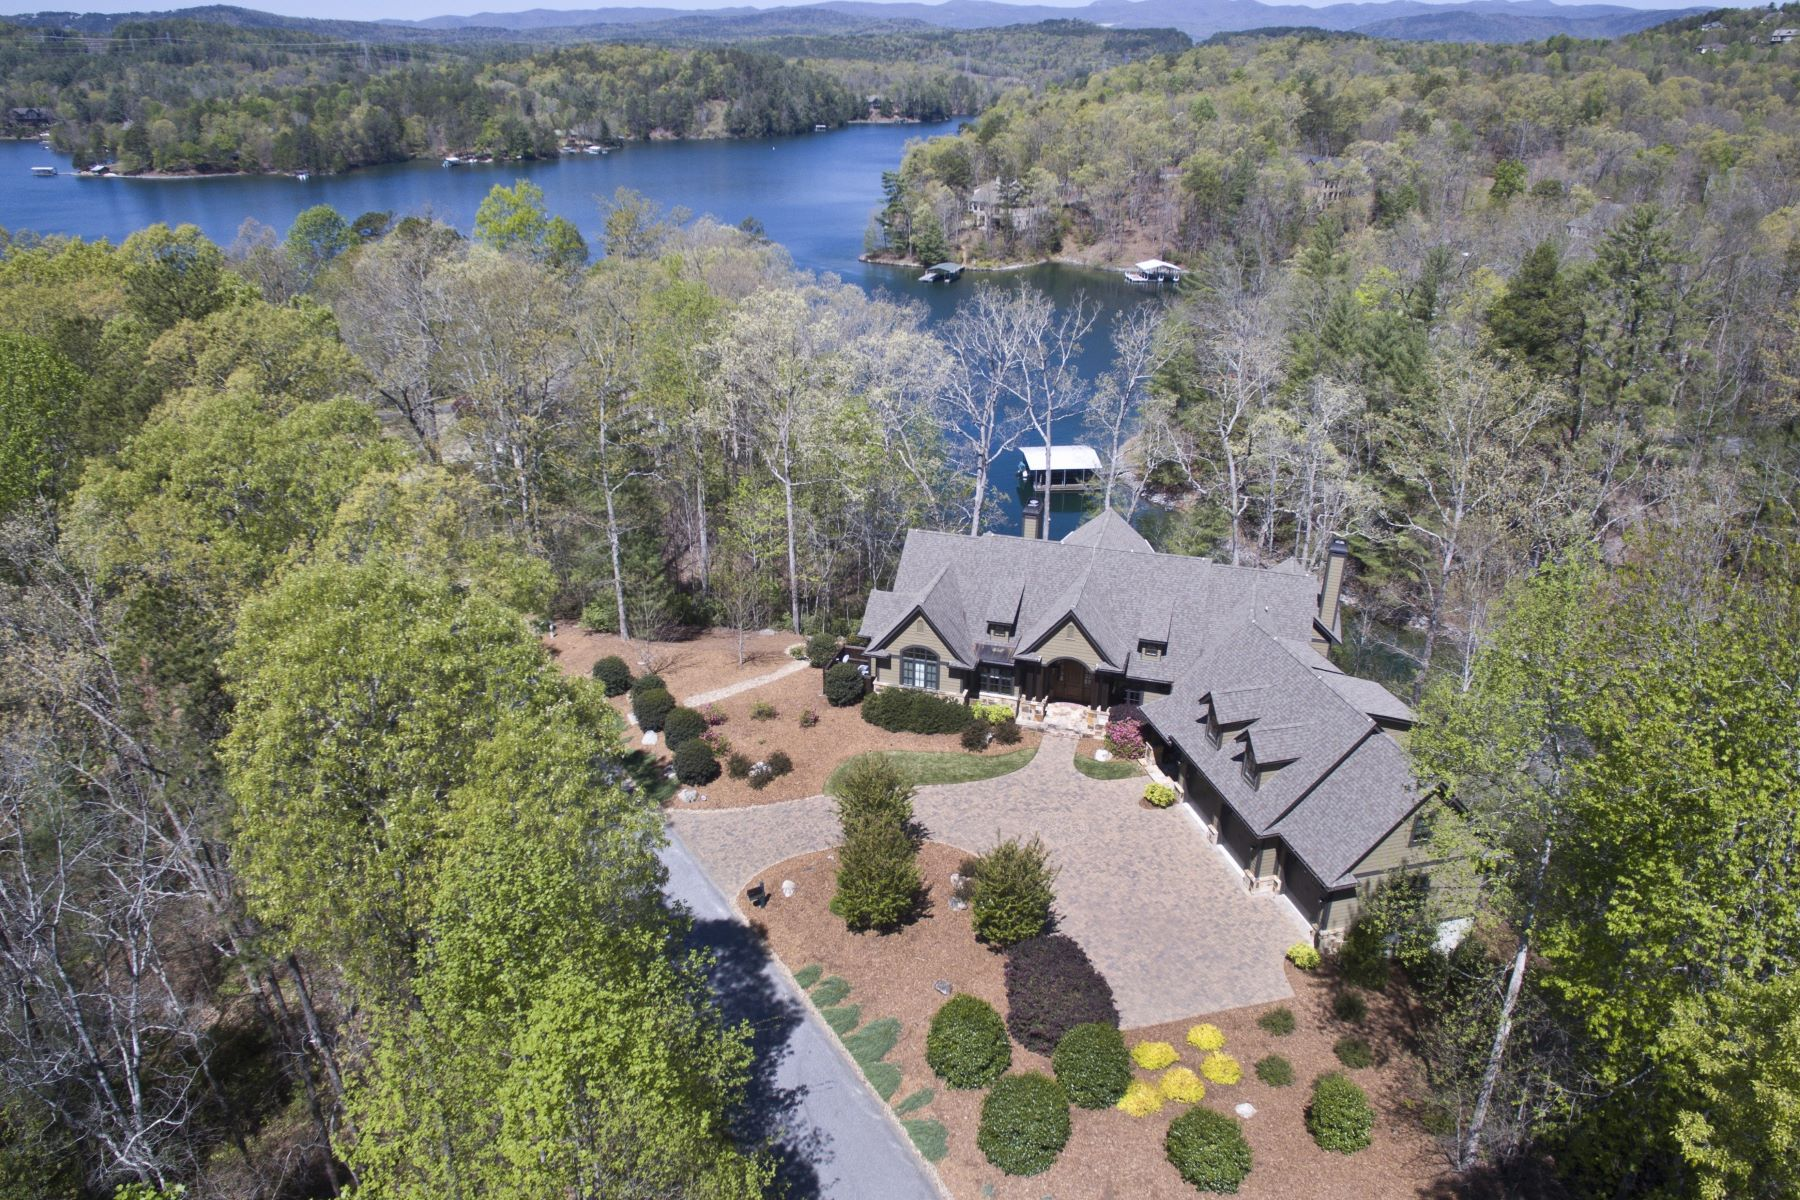 Single Family Homes für Verkauf beim Spacious Living on the Lake 110 Red Buckeye Trail, Sunset, South Carolina 29685 Vereinigte Staaten